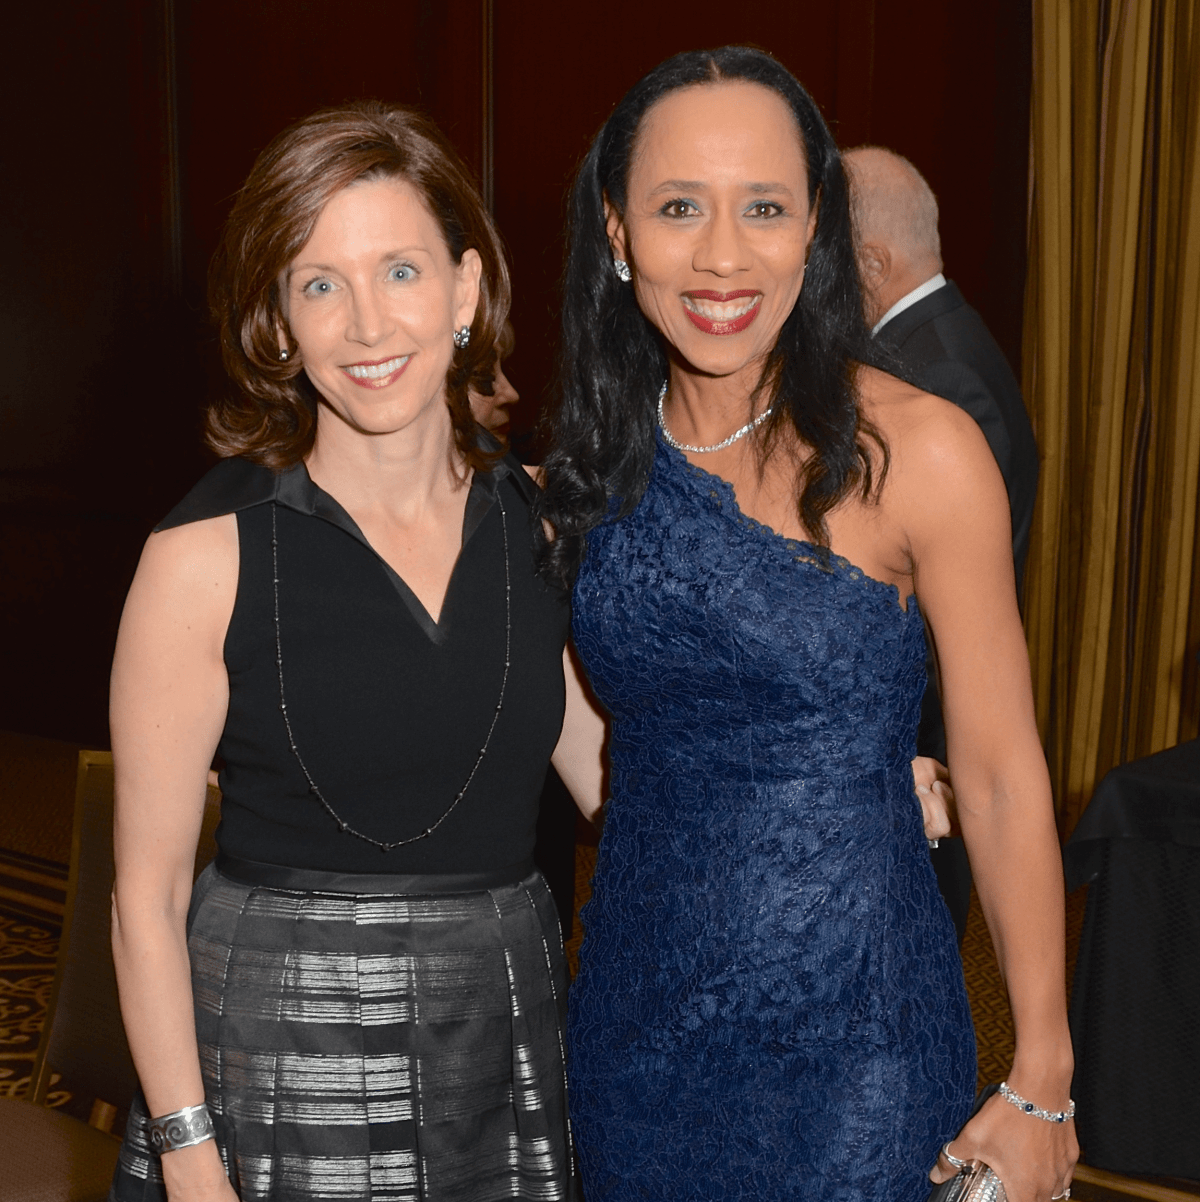 Planned Parenthood Gala, Nancy McGregor Manne, Gina Carroll